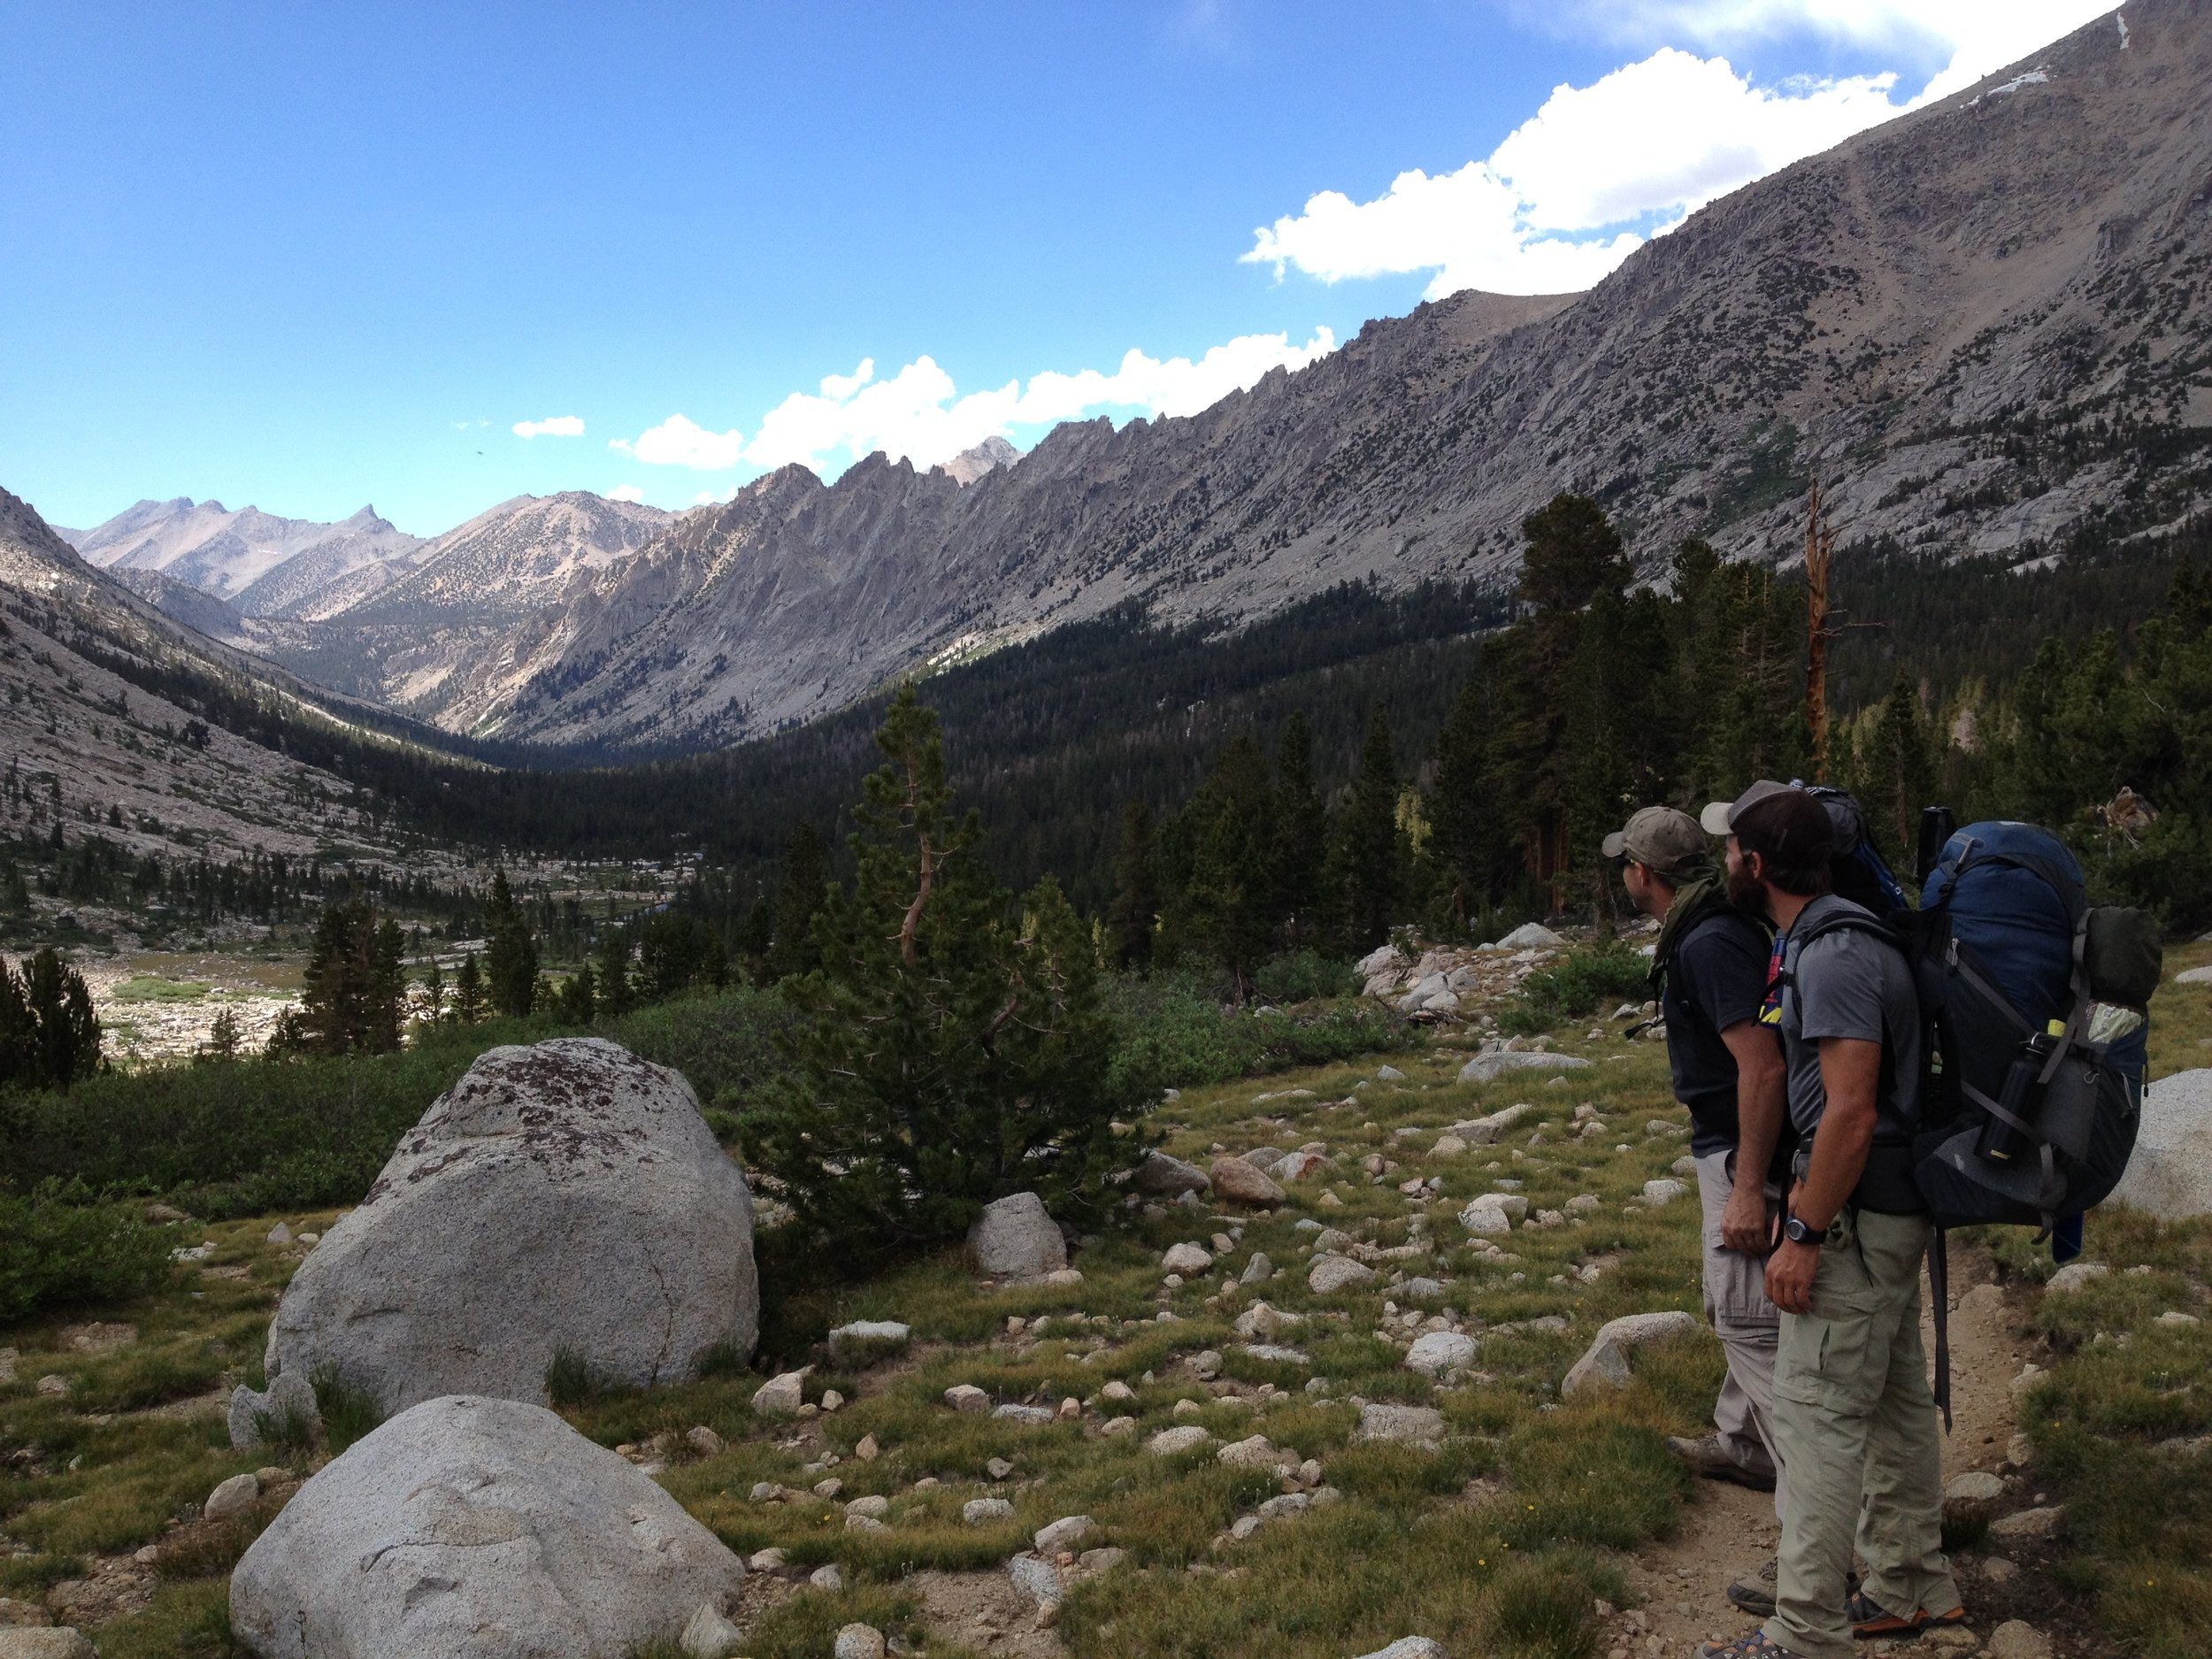 Looking back on Bubbs Creek, June 2014.